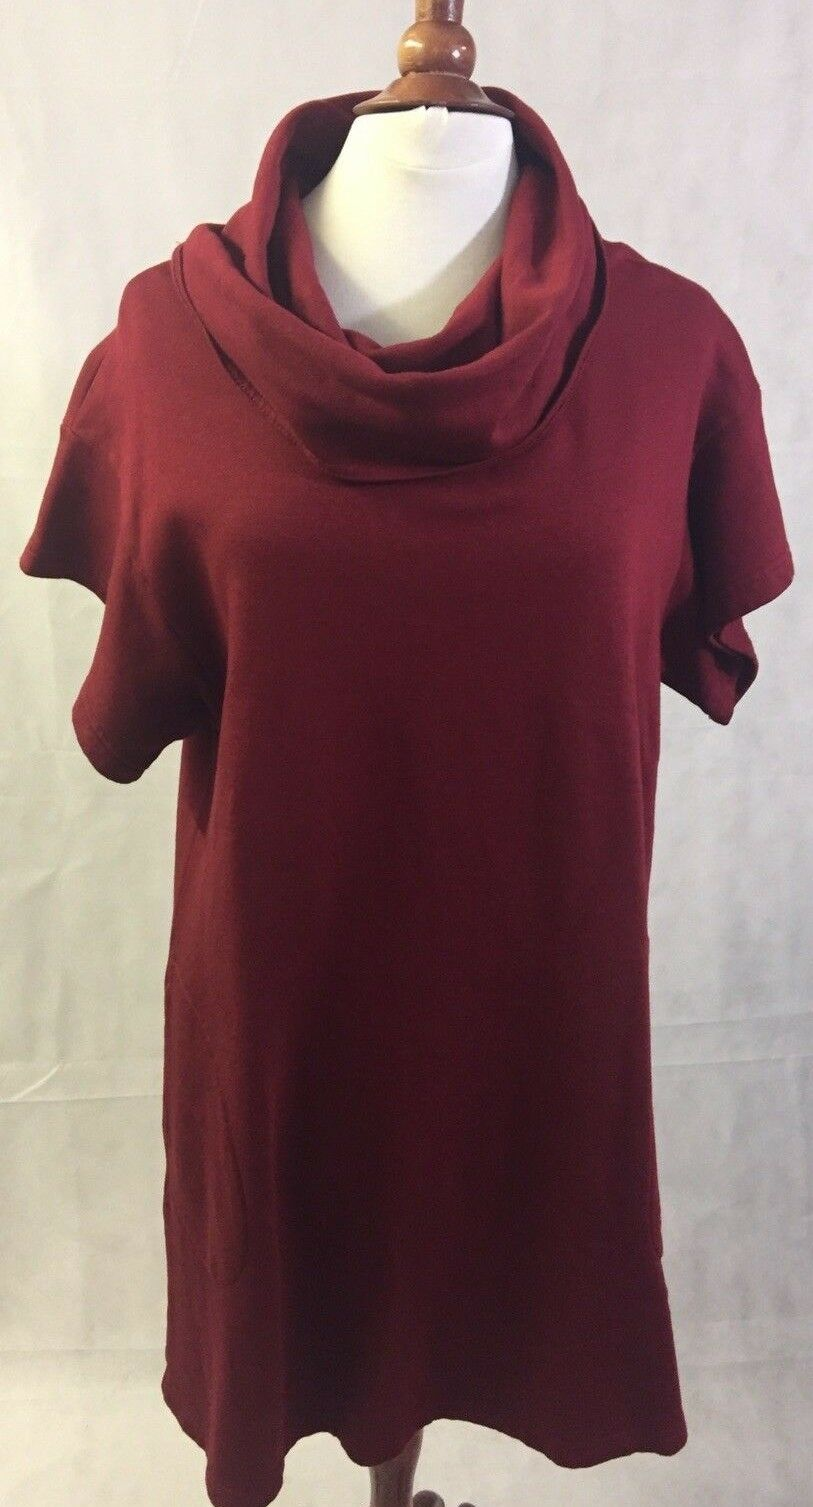 New rot Wine Maroon Bryn Walker Dress With Pockets Größe Small 2 4 Boat Neck NWT